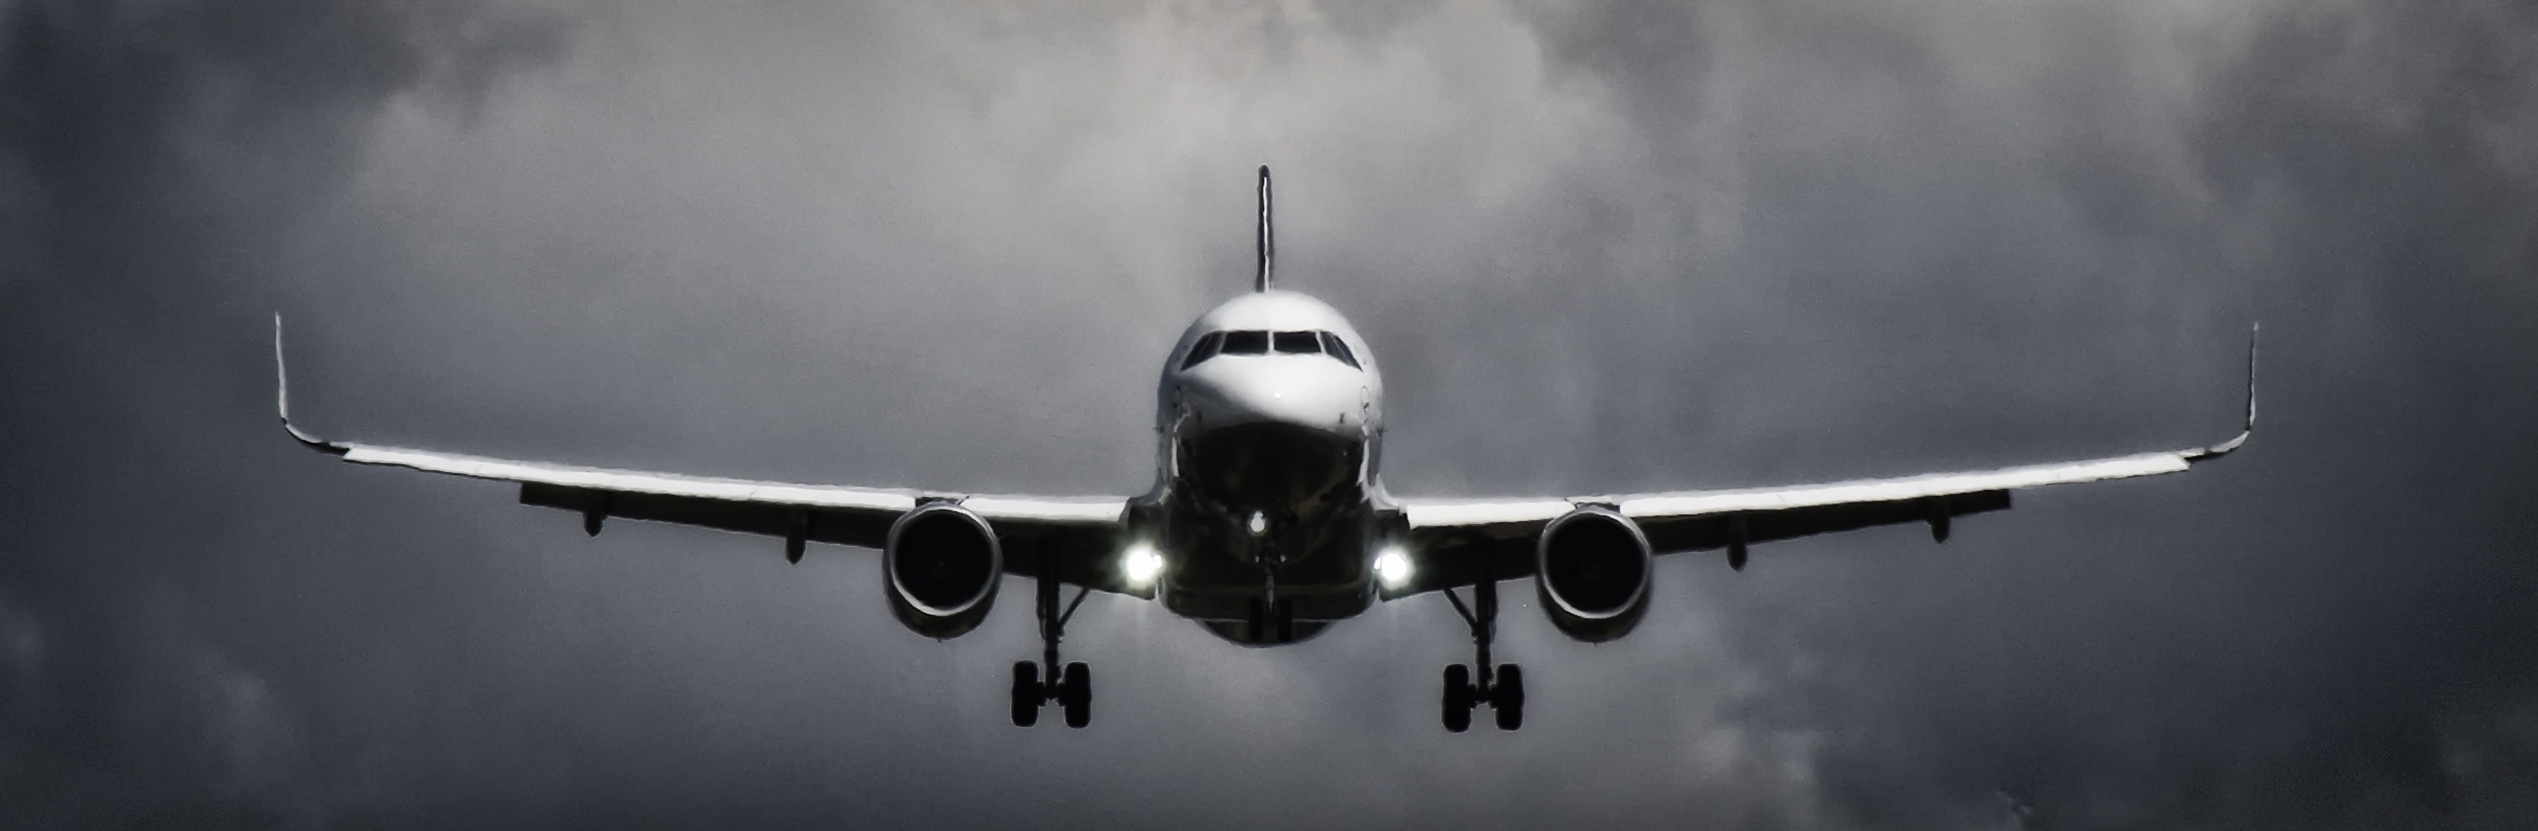 In Flight Airliner in Grayscale Photo